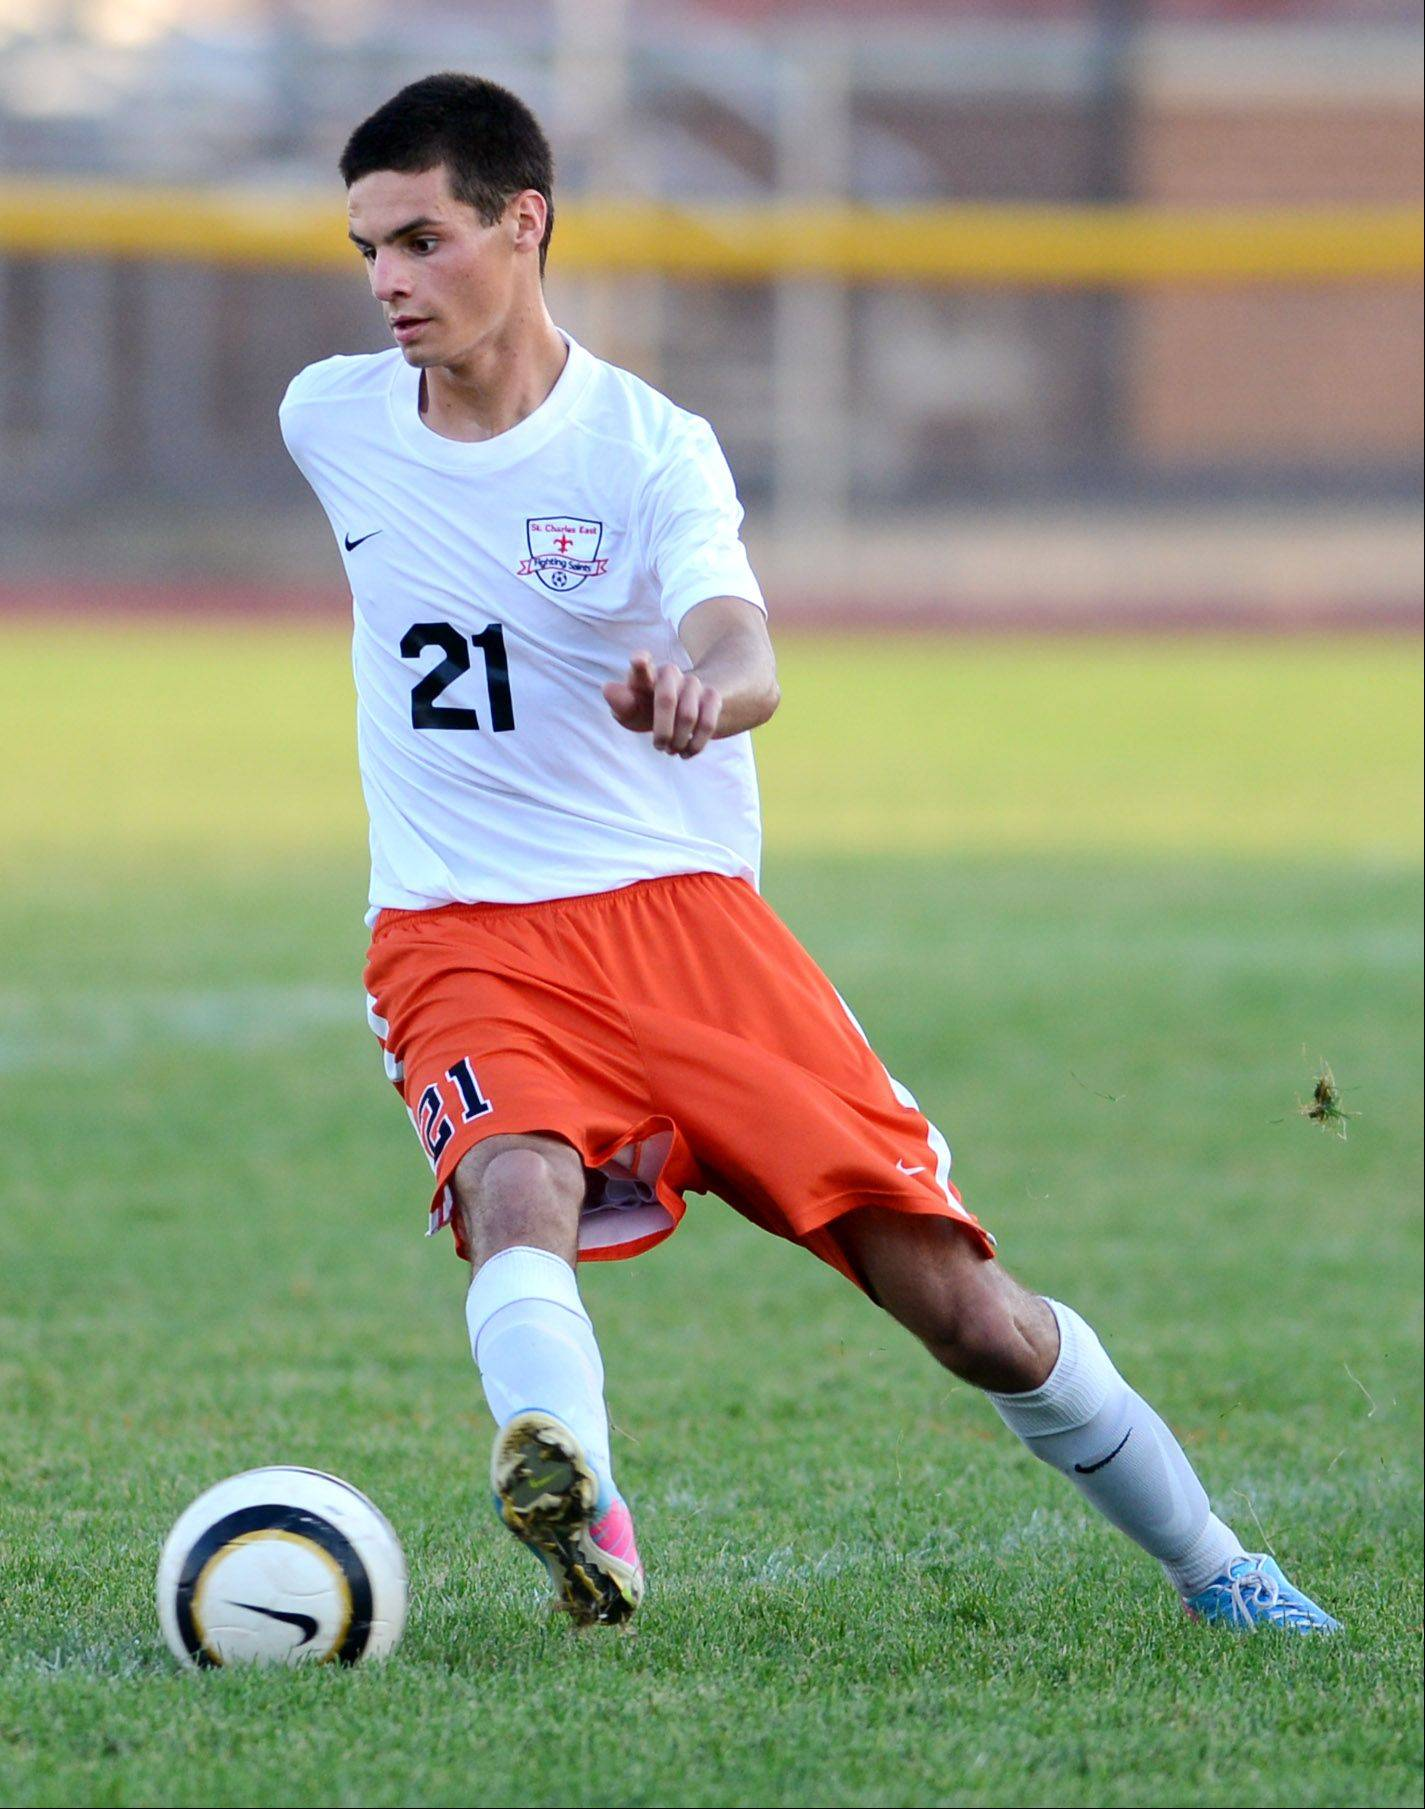 St. Charles East's Daniel DiLeonardi controls the ball in the midfield during Thursday's game in St. Charles.